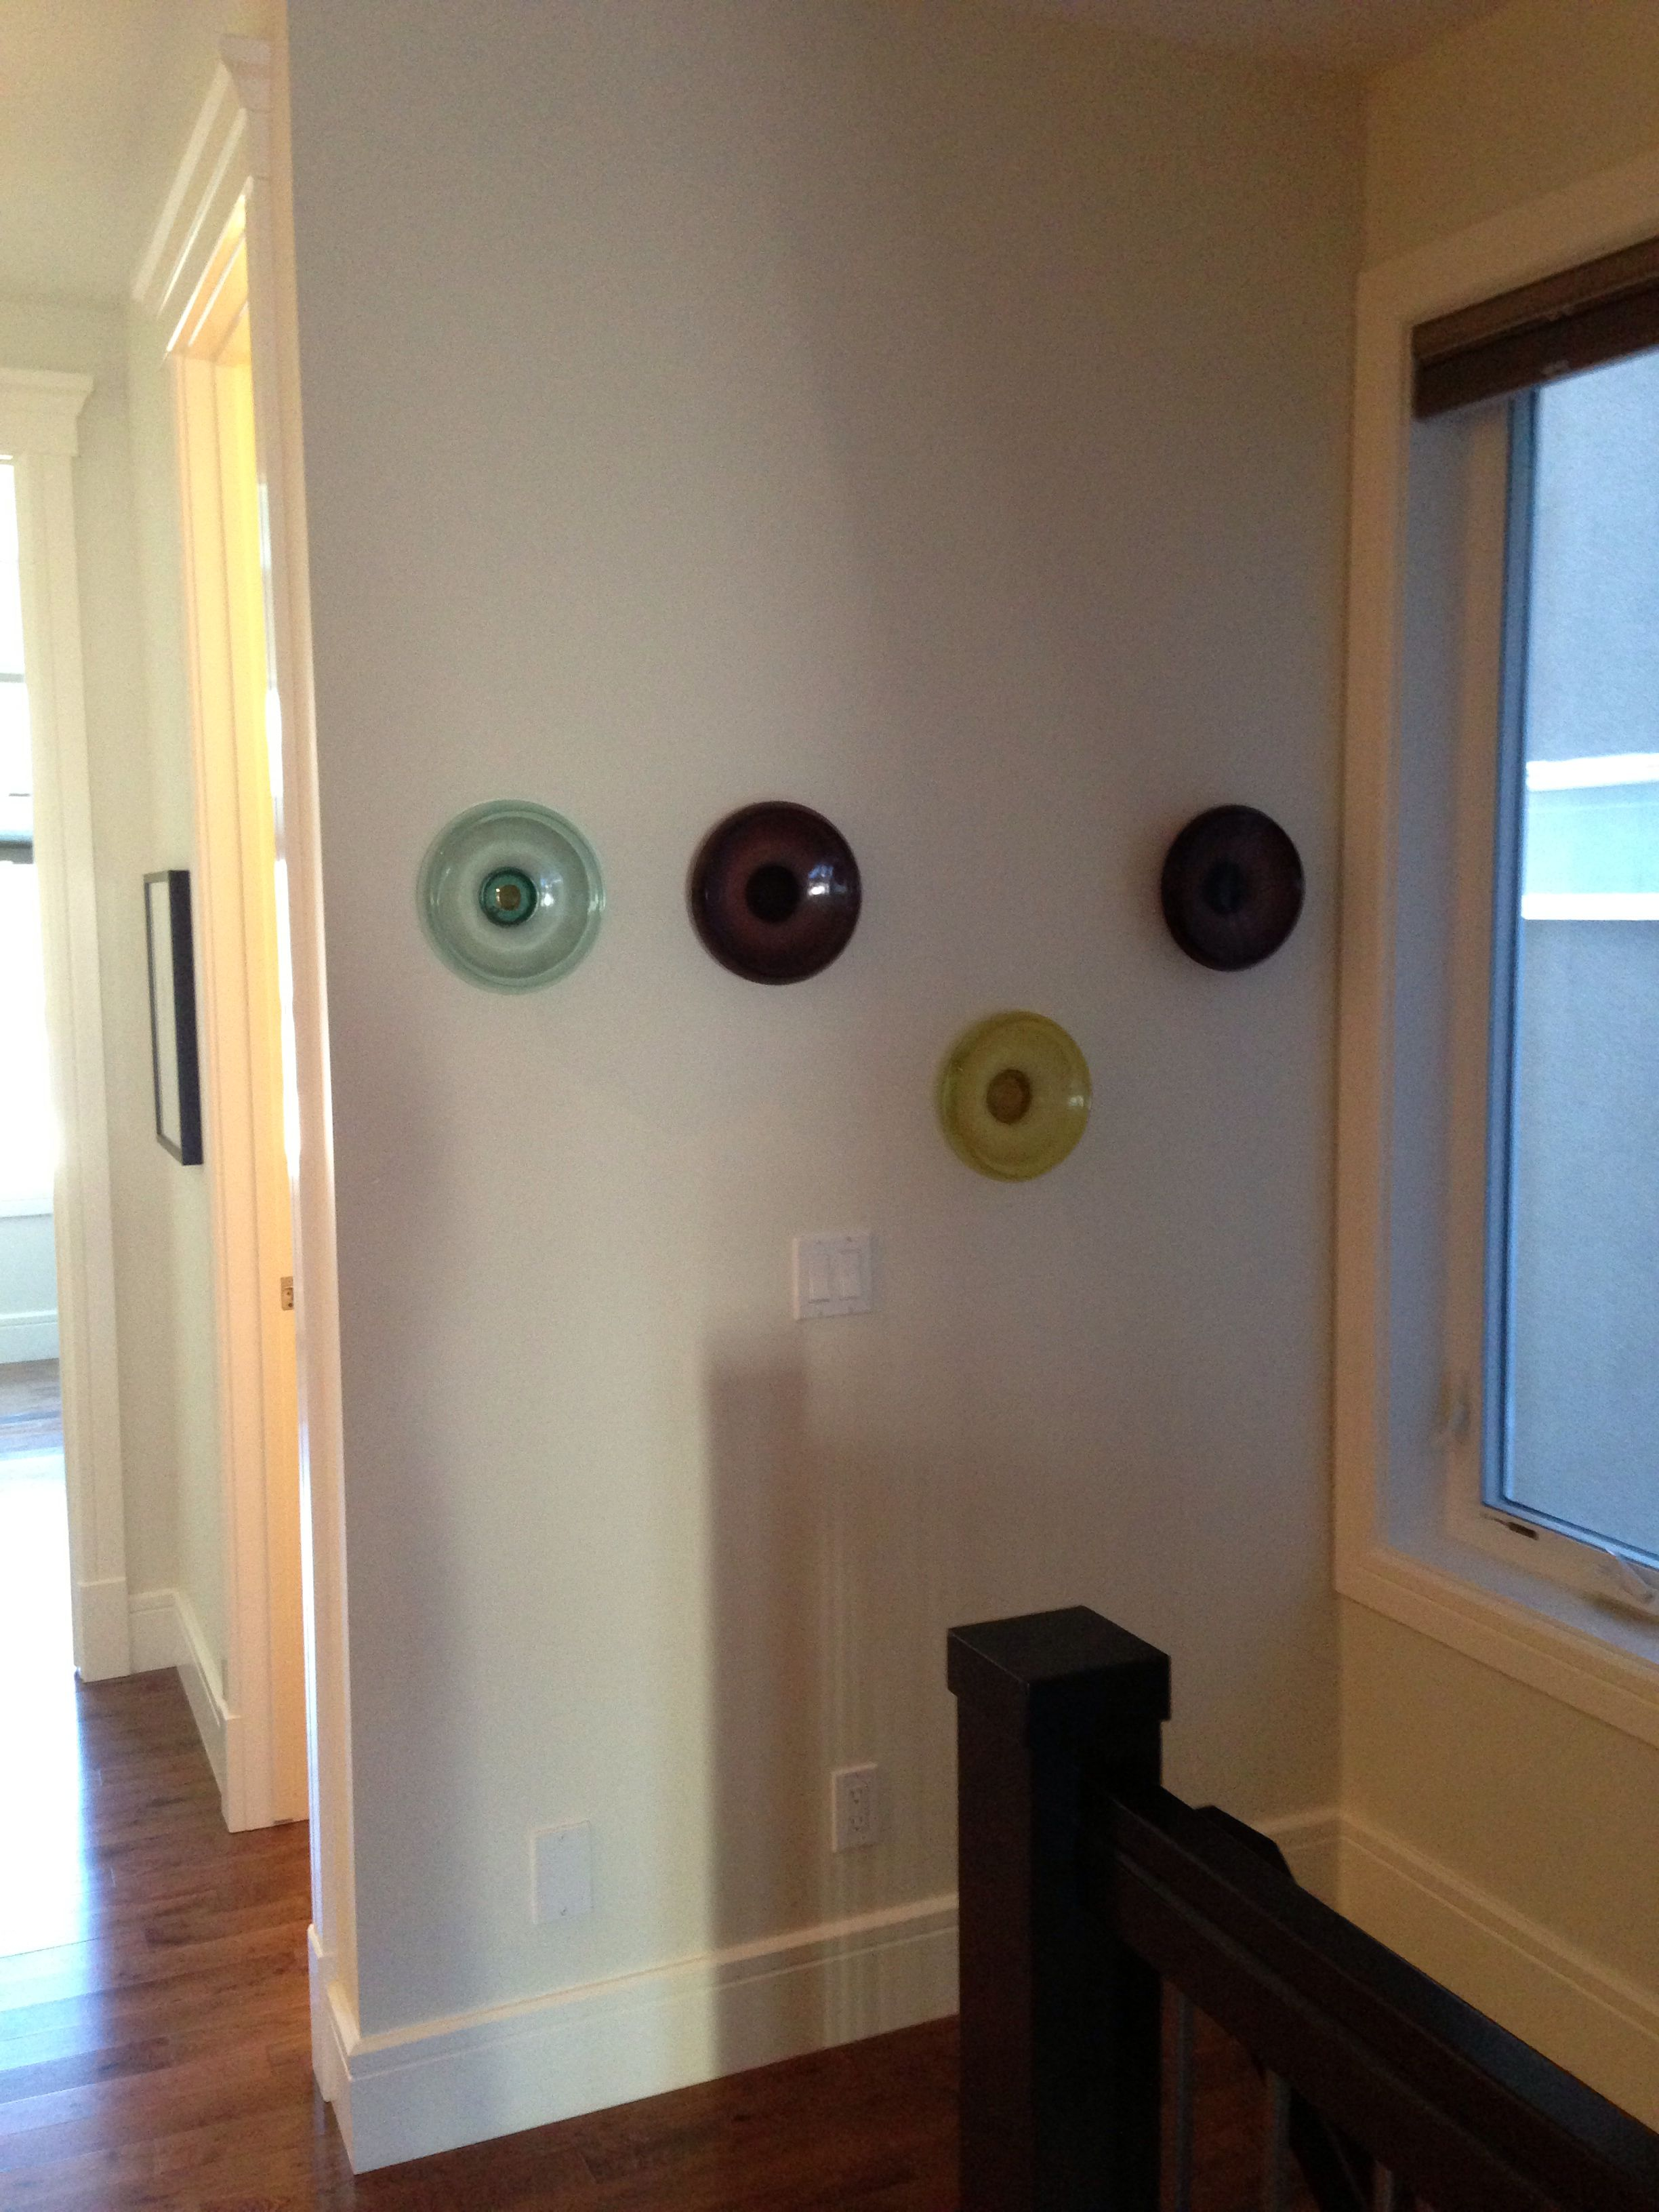 Tom Dixon Glass Knobs From KIT Interior Objects Calgary